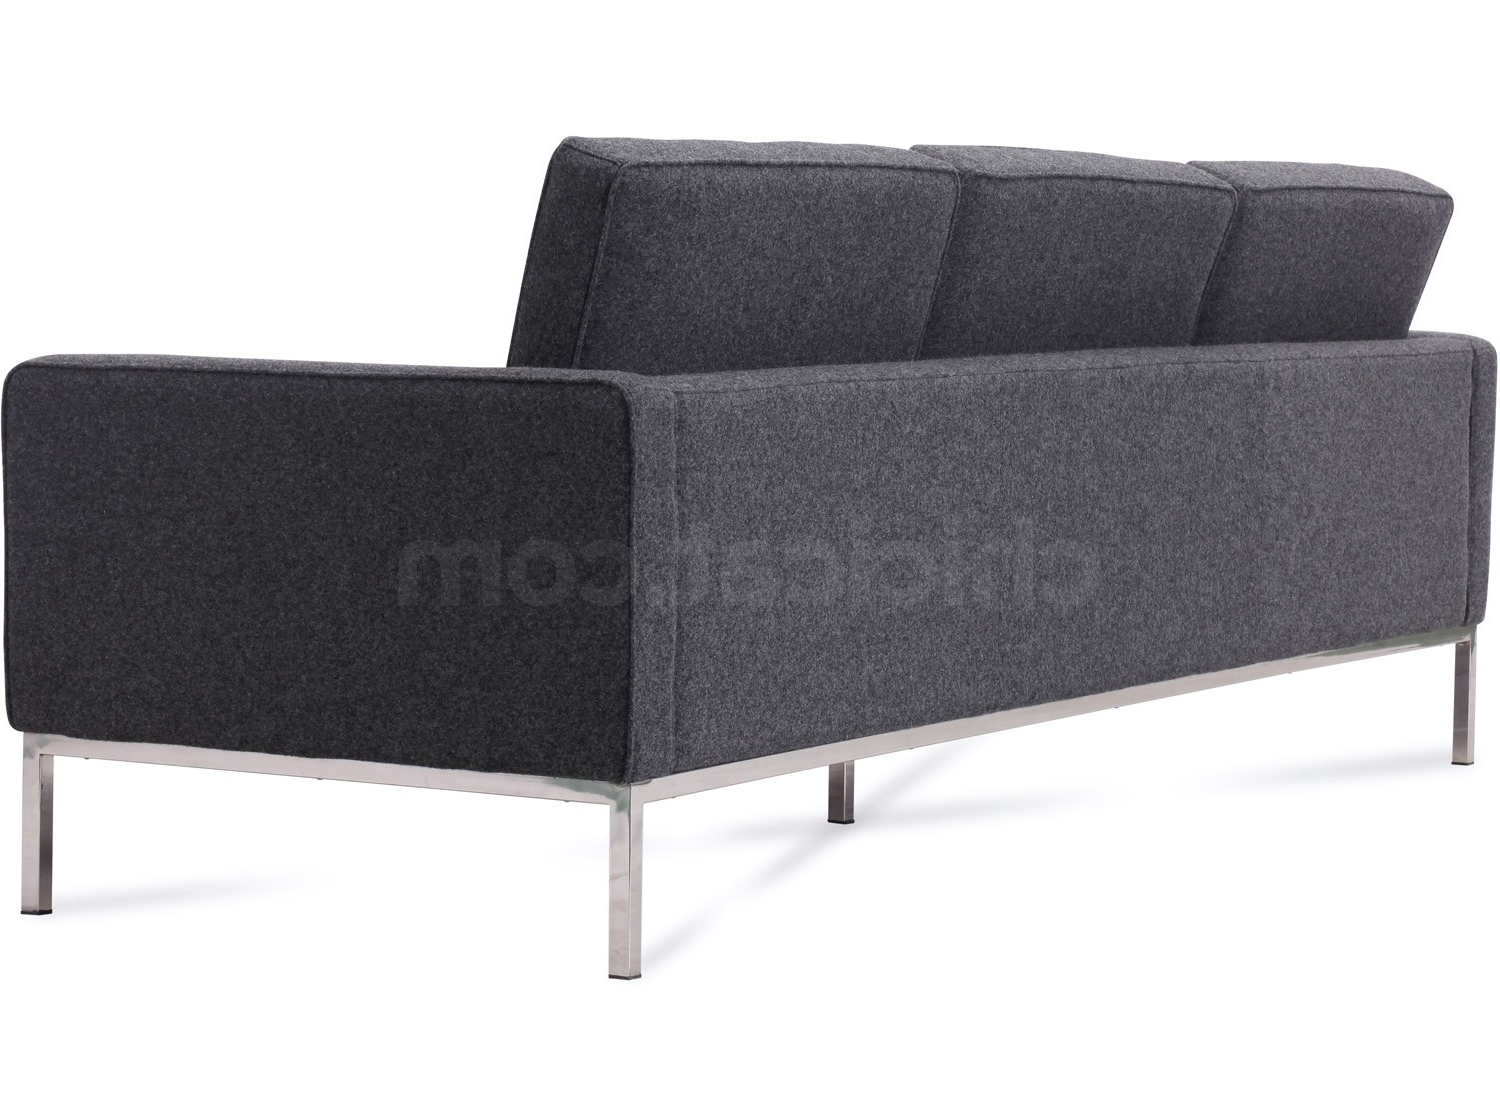 Florence Knoll Sofa 3 Seater Wool (Platinum Replica) With Regard To Best And Newest Florence Knoll 3 Seater Sofas (View 10 of 20)